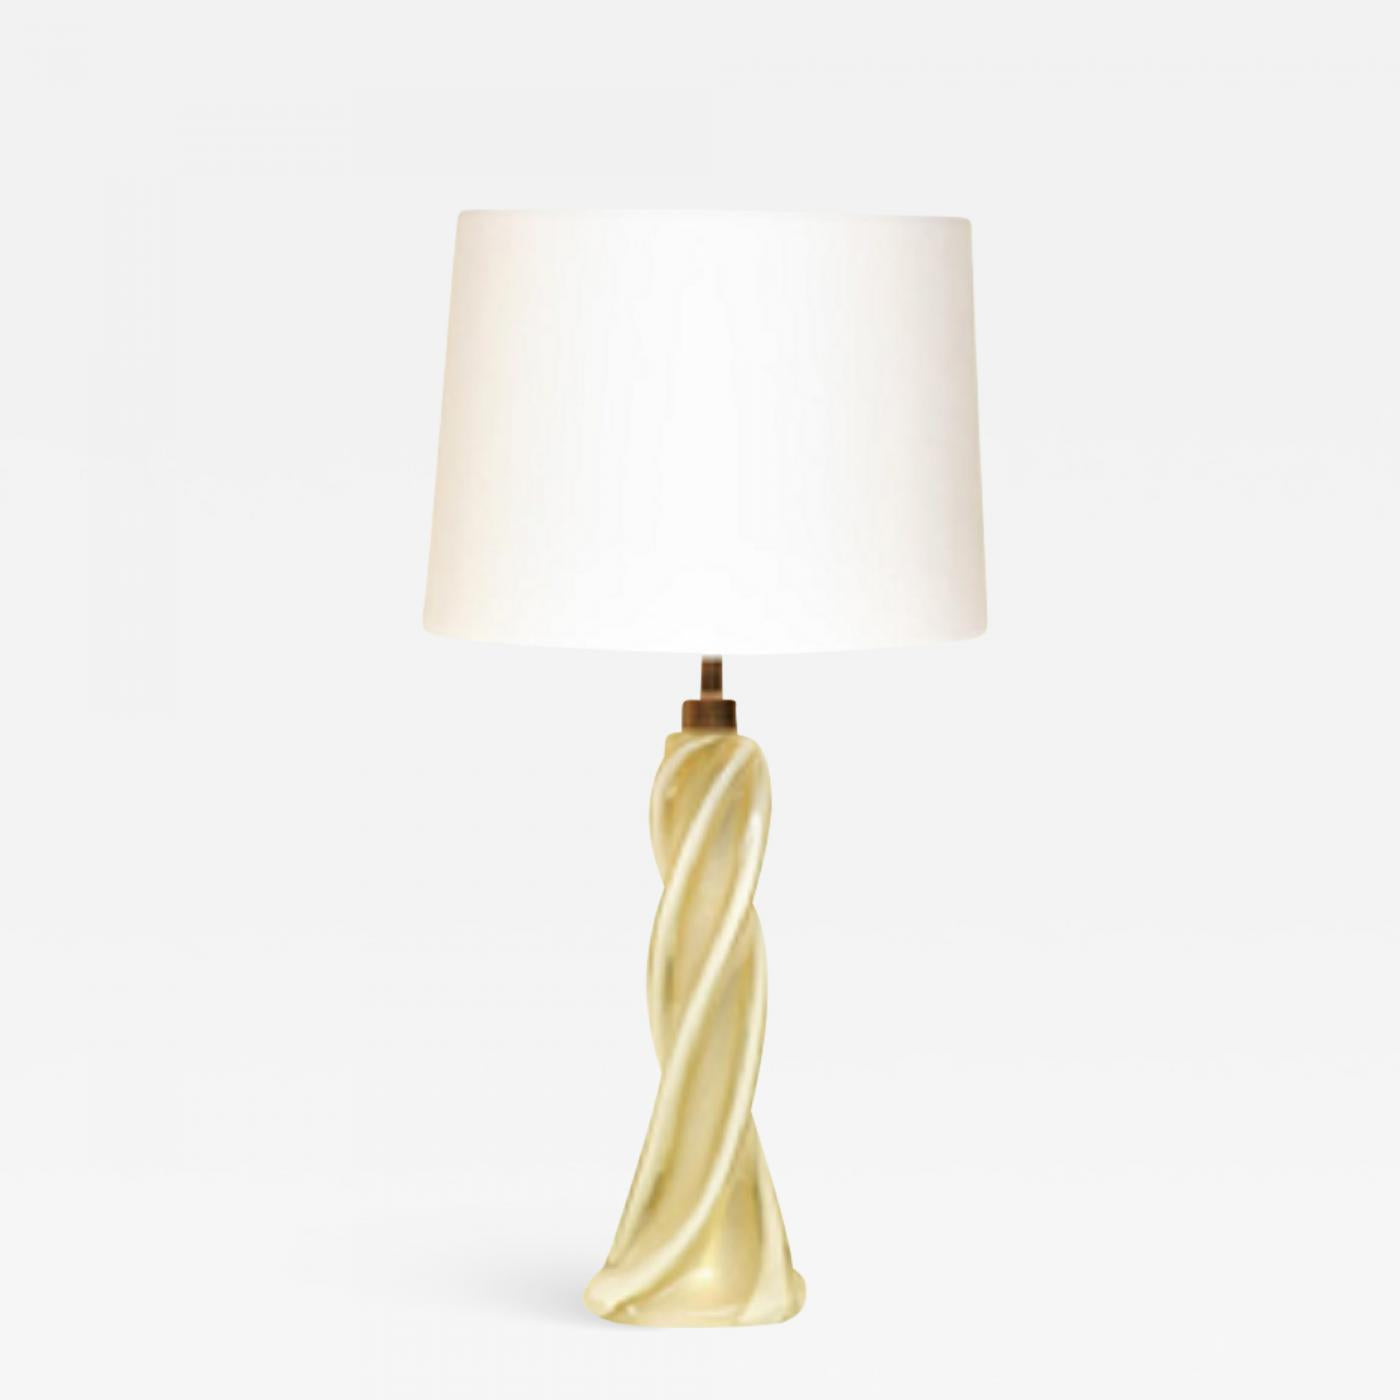 Seguso (Attributed) Seguso Table Lamp Murano Art Glass Mid-Century Modern, Italy, 1950s